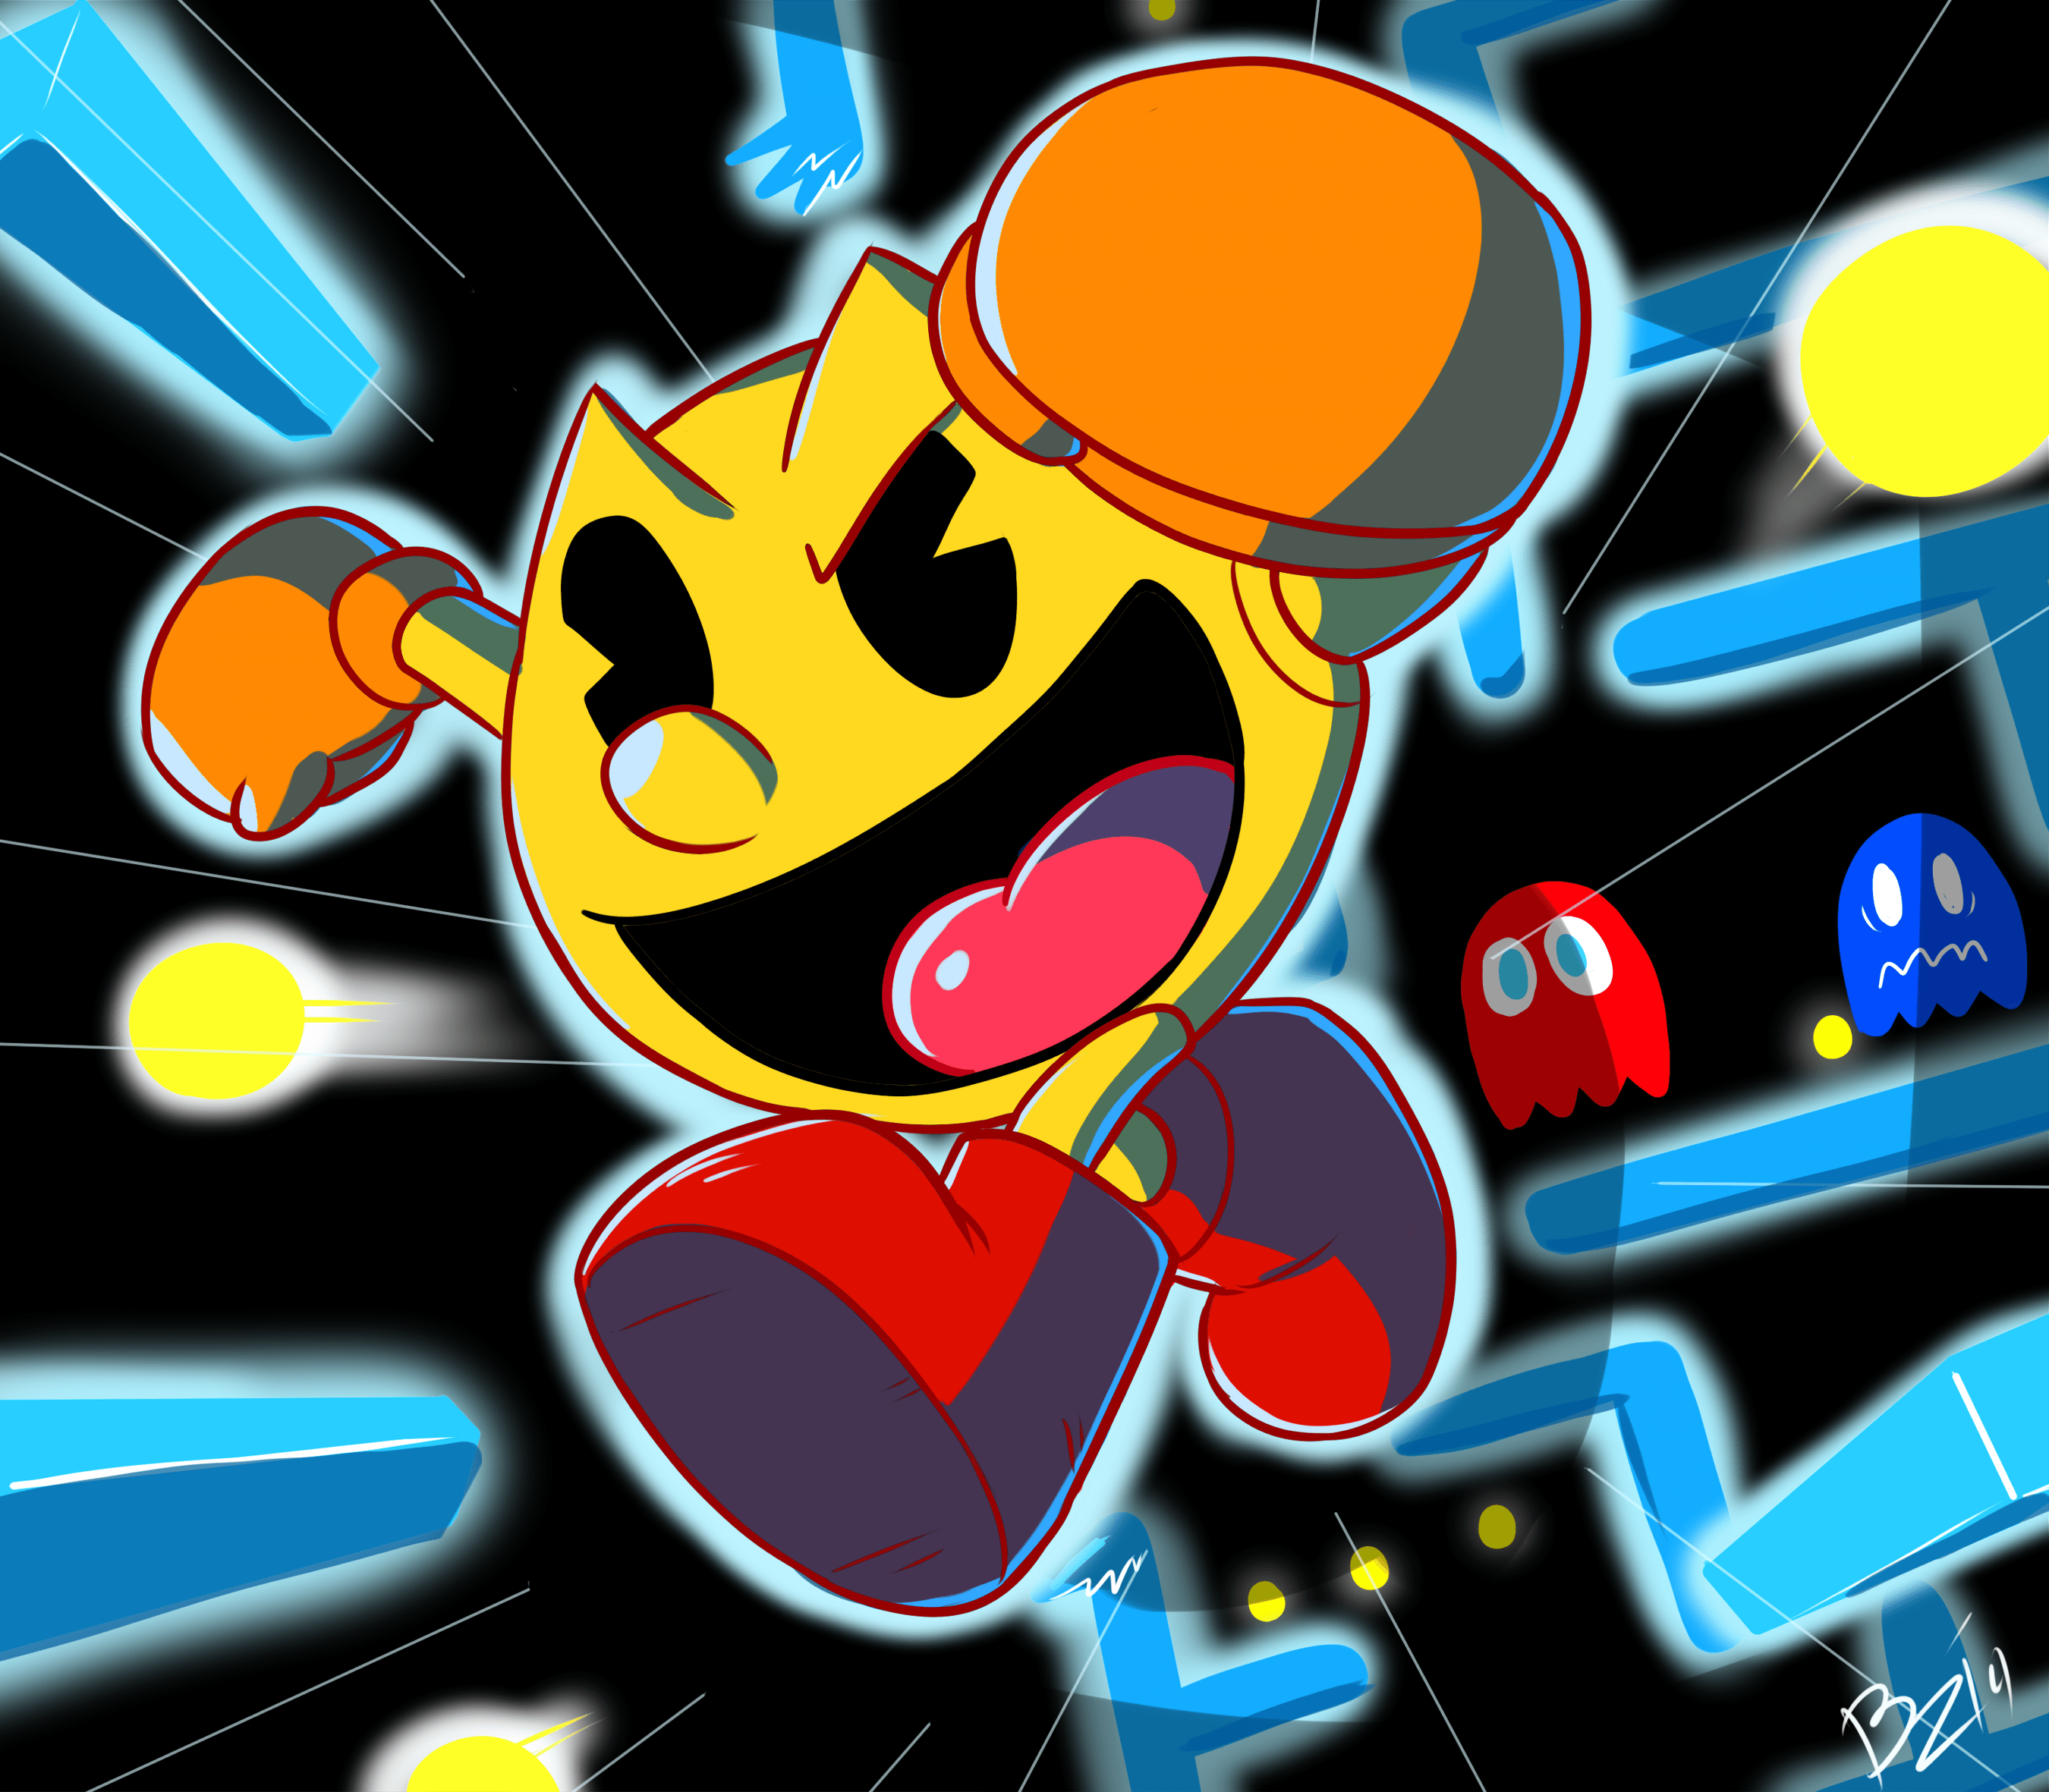 Mario 3d Wallpaper Pacman Smash By Ztoons On Newgrounds